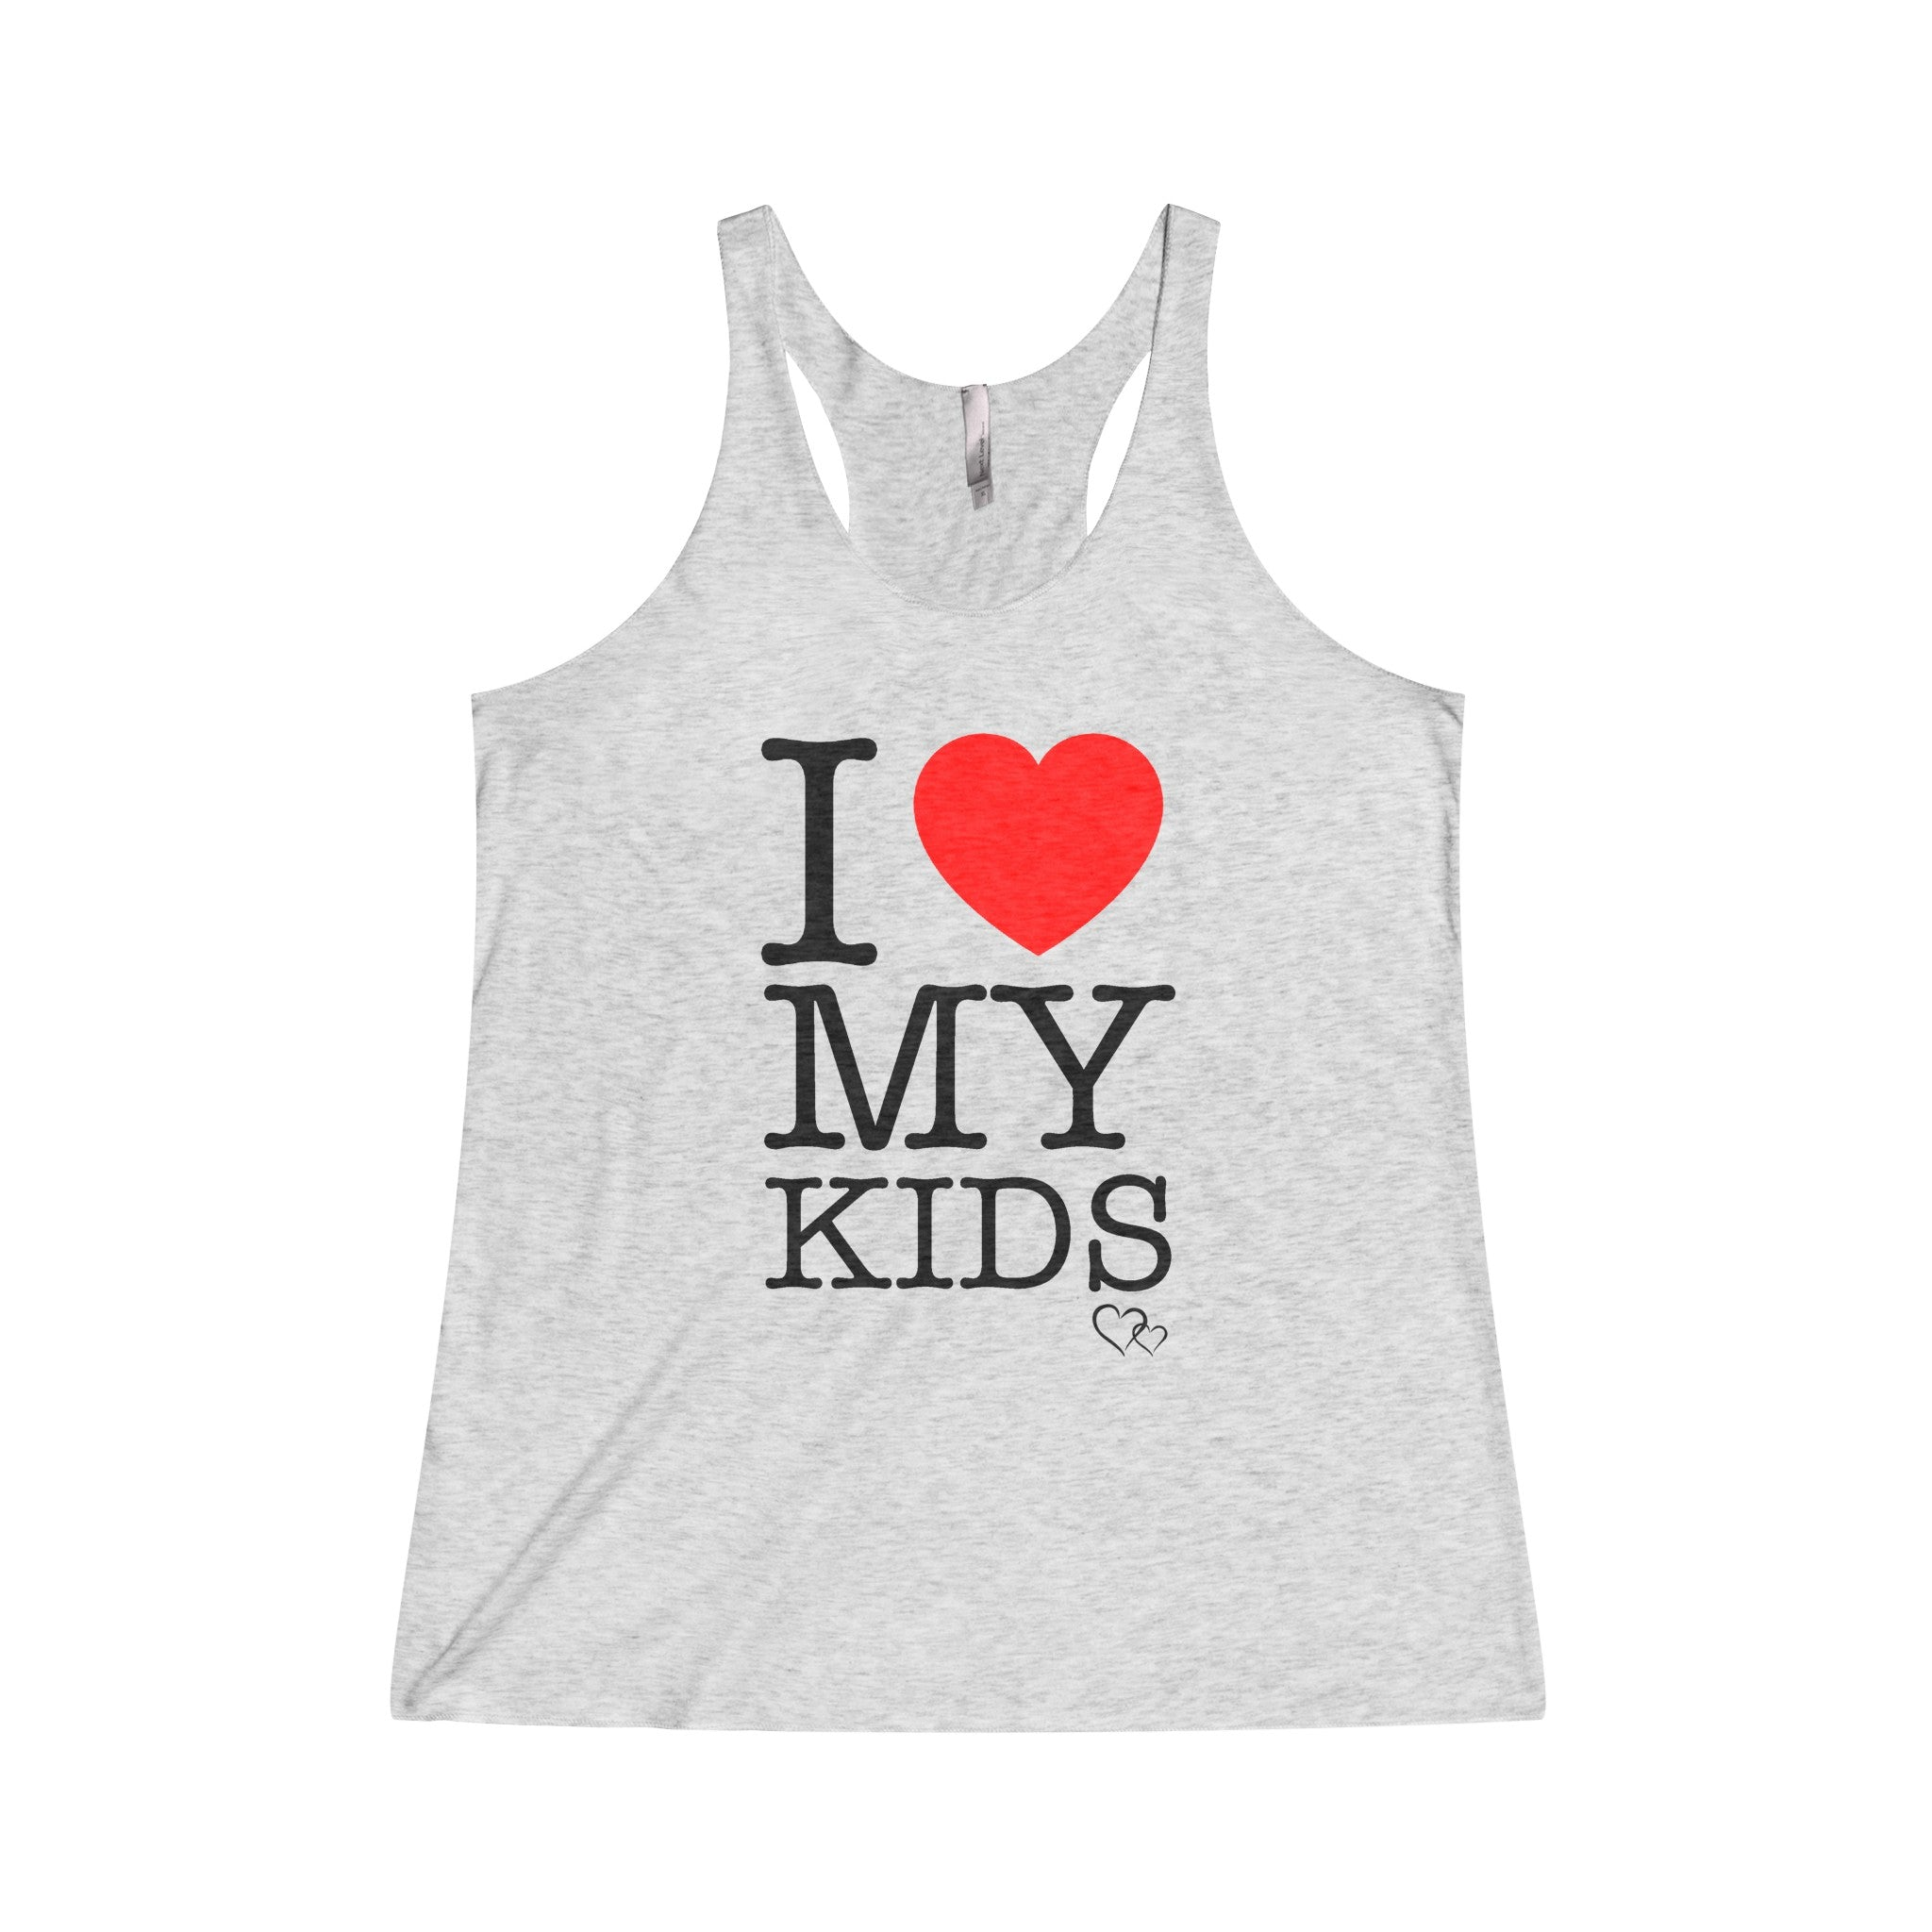 I LOVE MY KIDS - Racerback Tank